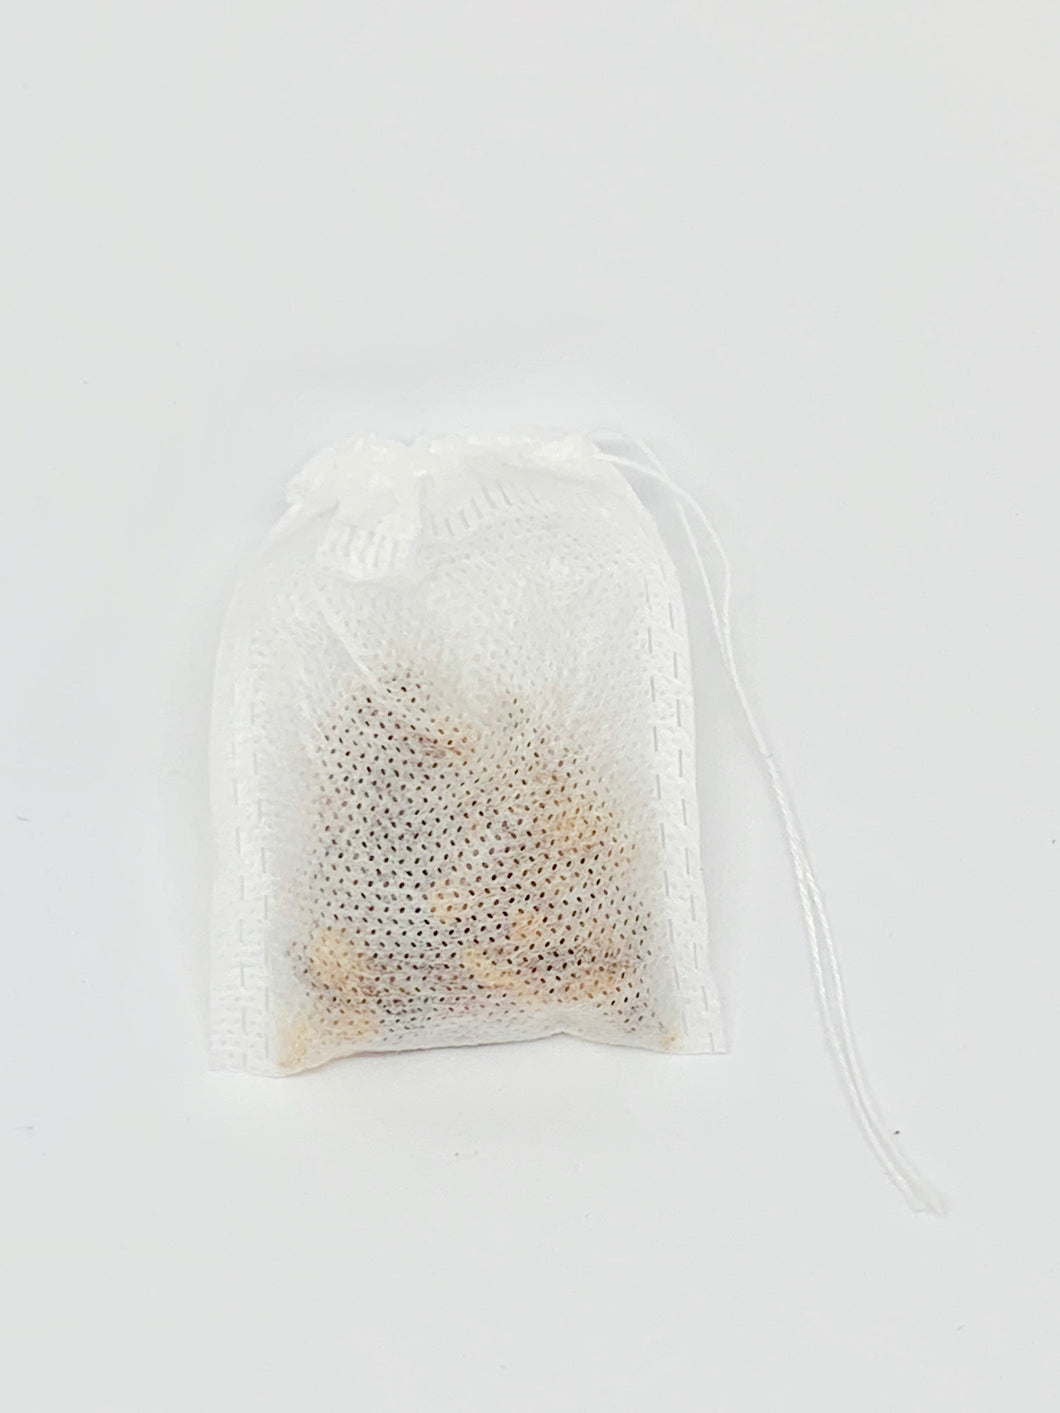 Personal Teabags